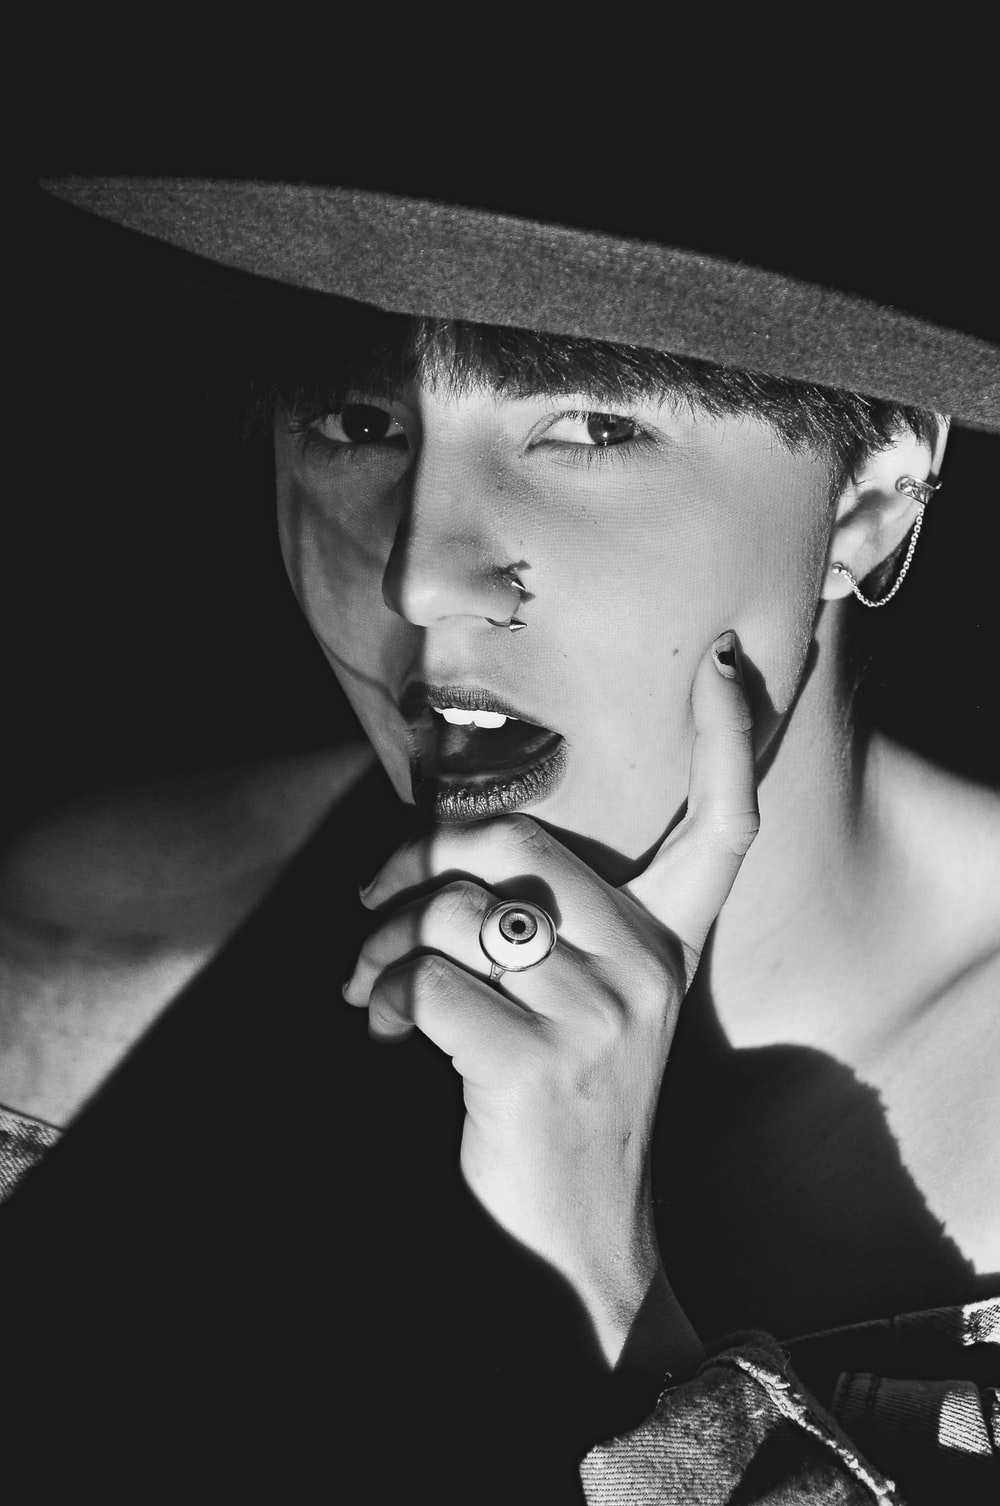 grayscale photography of man wearing cowboy hat